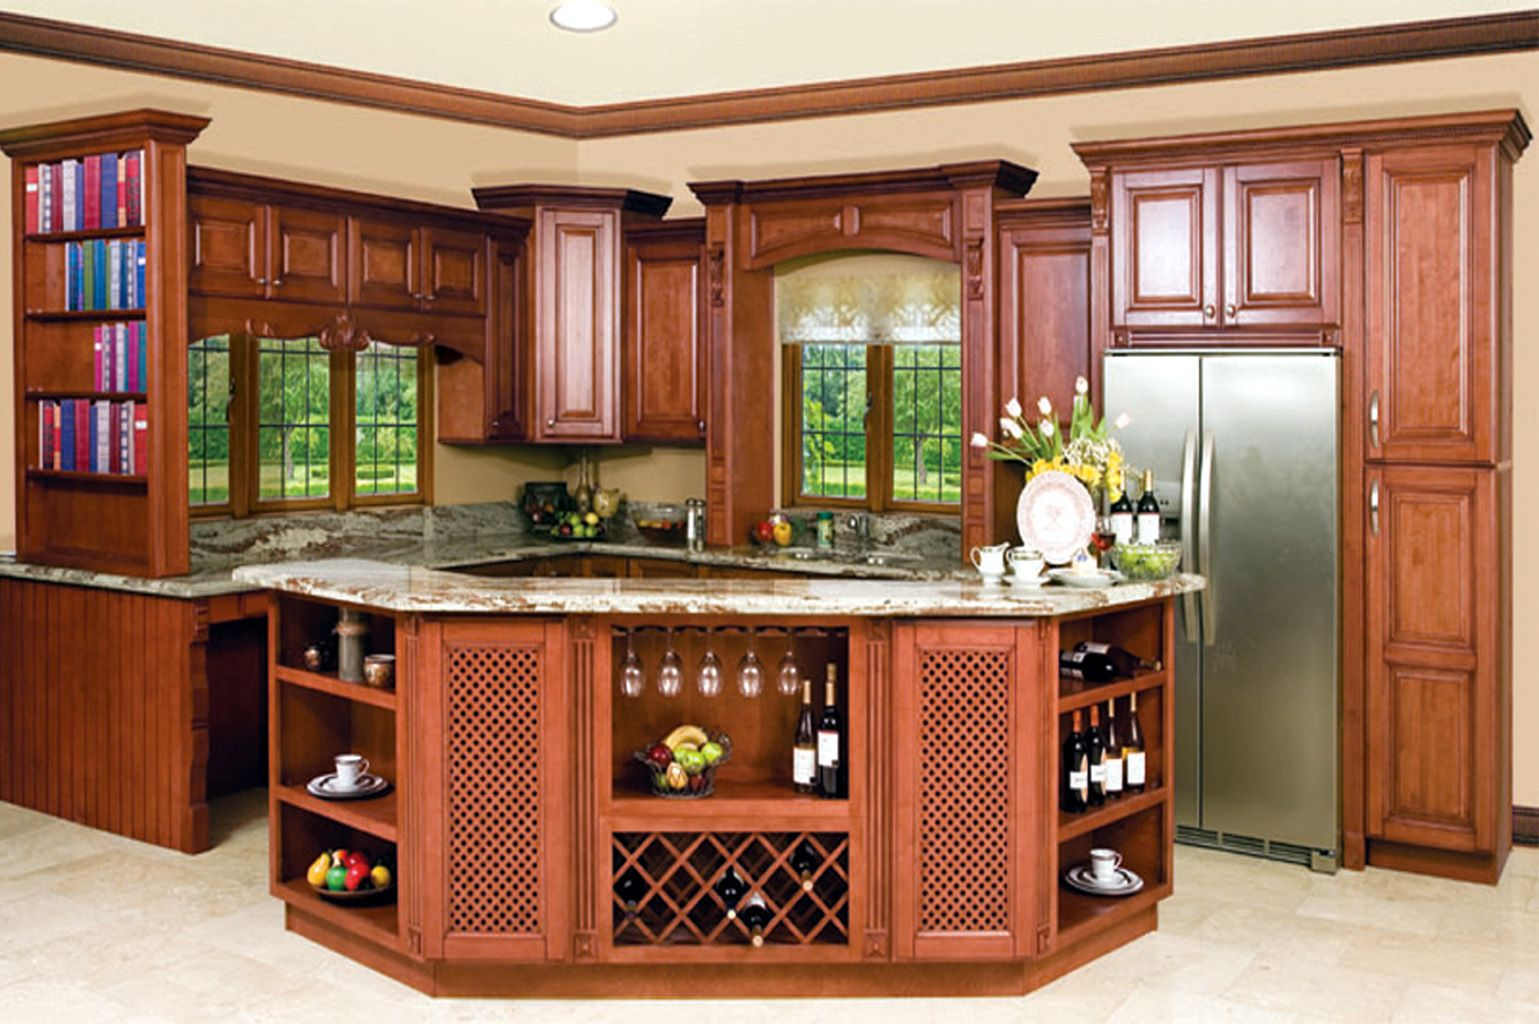 Kitchen Cabinets Warehouse Fairfield Nj North America Maple Mocha Glaze Color Kitchen Cabinets